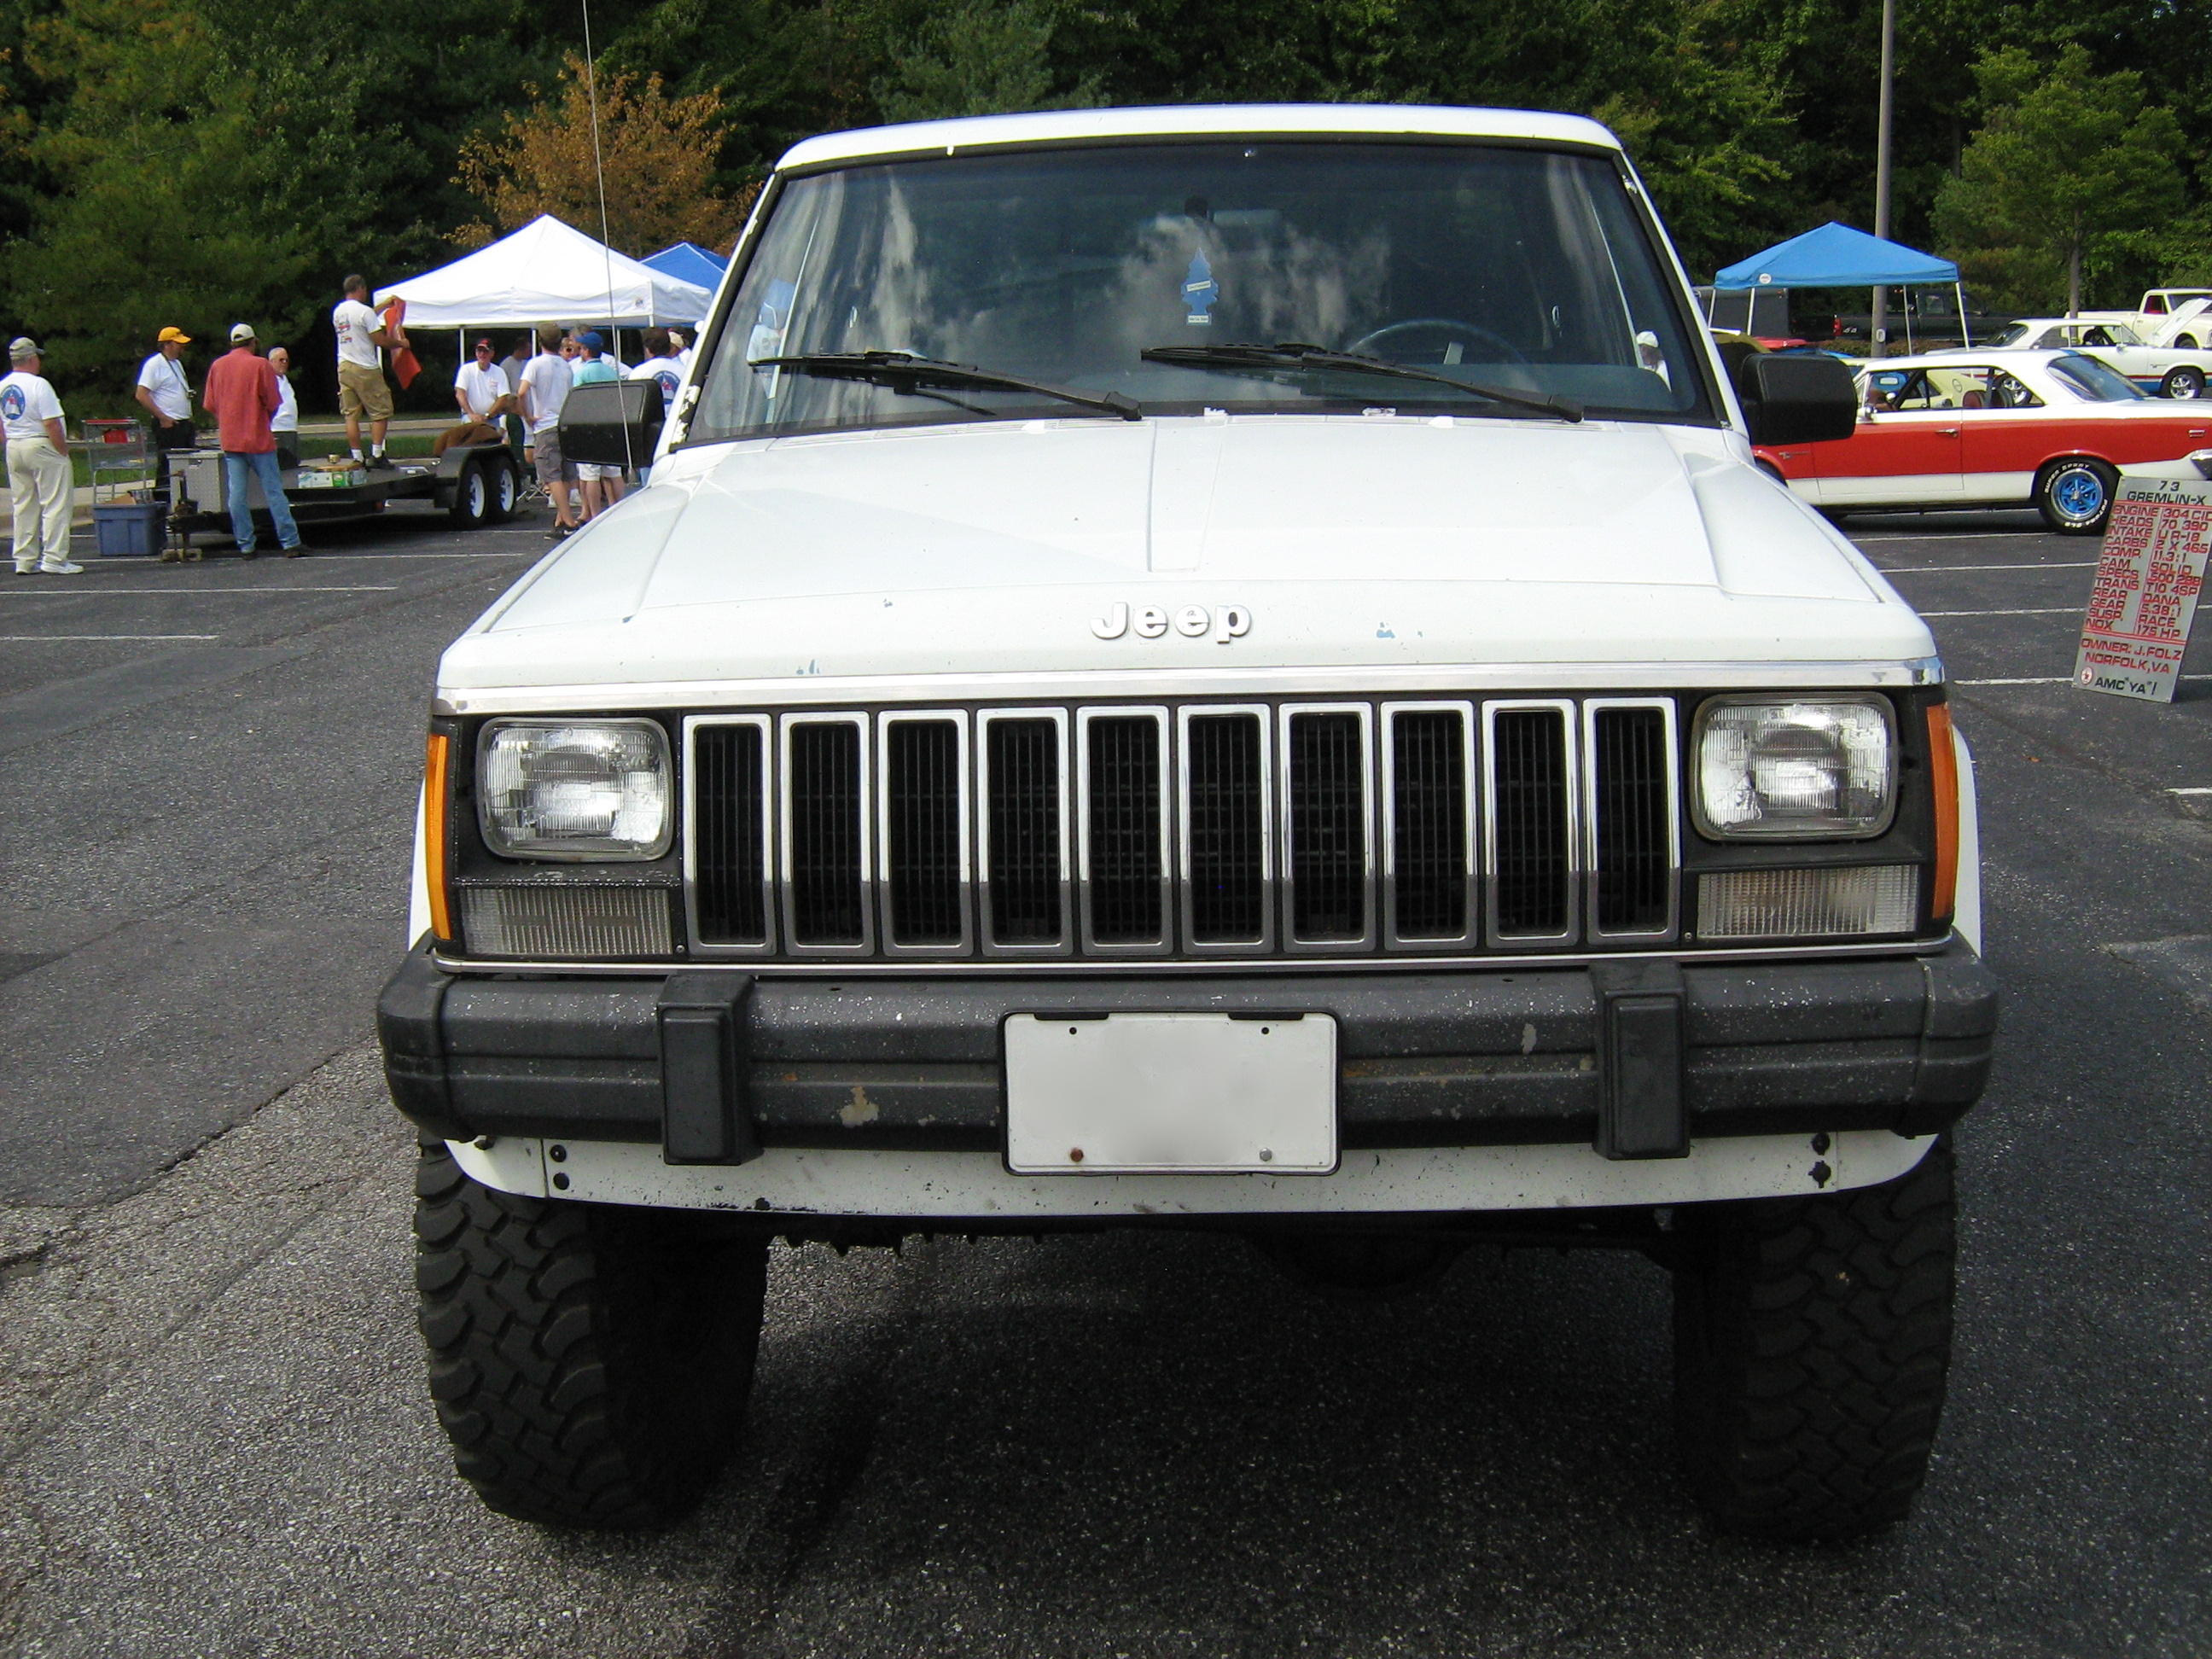 Jeep Pickup Truck >> File:Jeep Comanche Pioneer white MD f.jpg - Wikimedia Commons